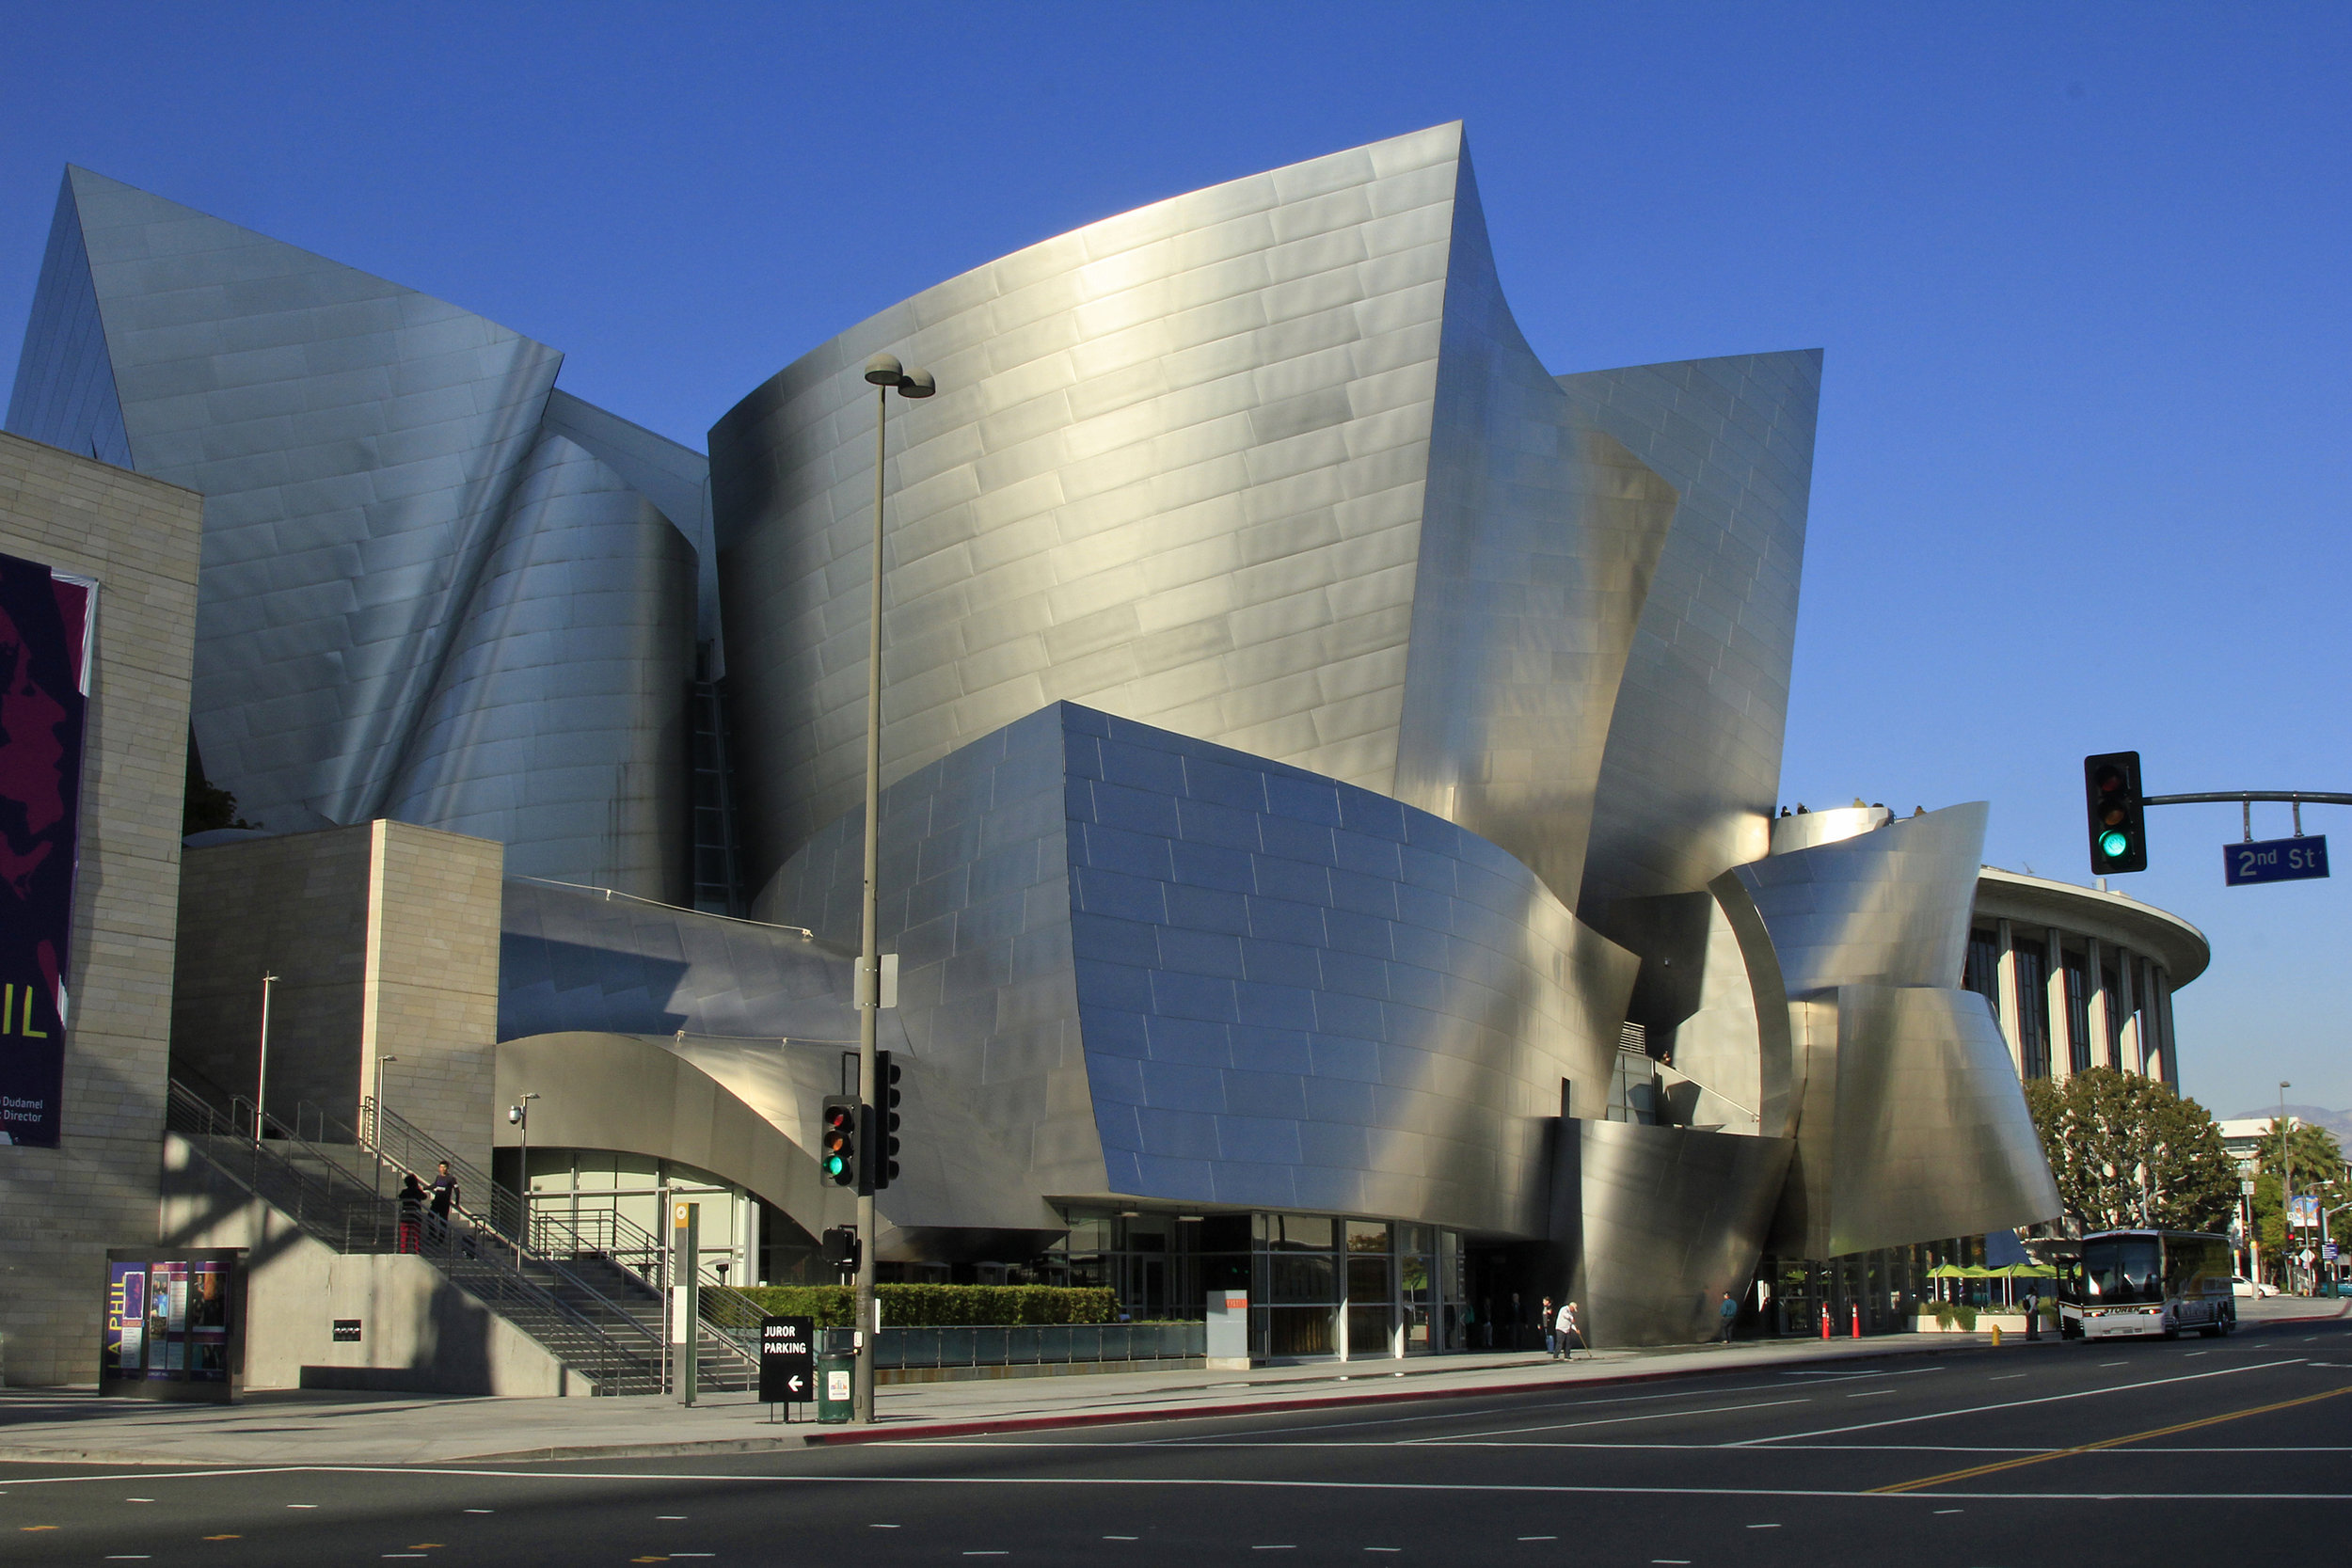 Walt Disney Concert Hall - Frank Gehry. 1999-2003. Eleven years and $274 million dollars were required to build the beautiful and and acoustically luscious venue that's home to the Los Angeles Philharmonic at the Performance Arts Center in Downtown L.A.